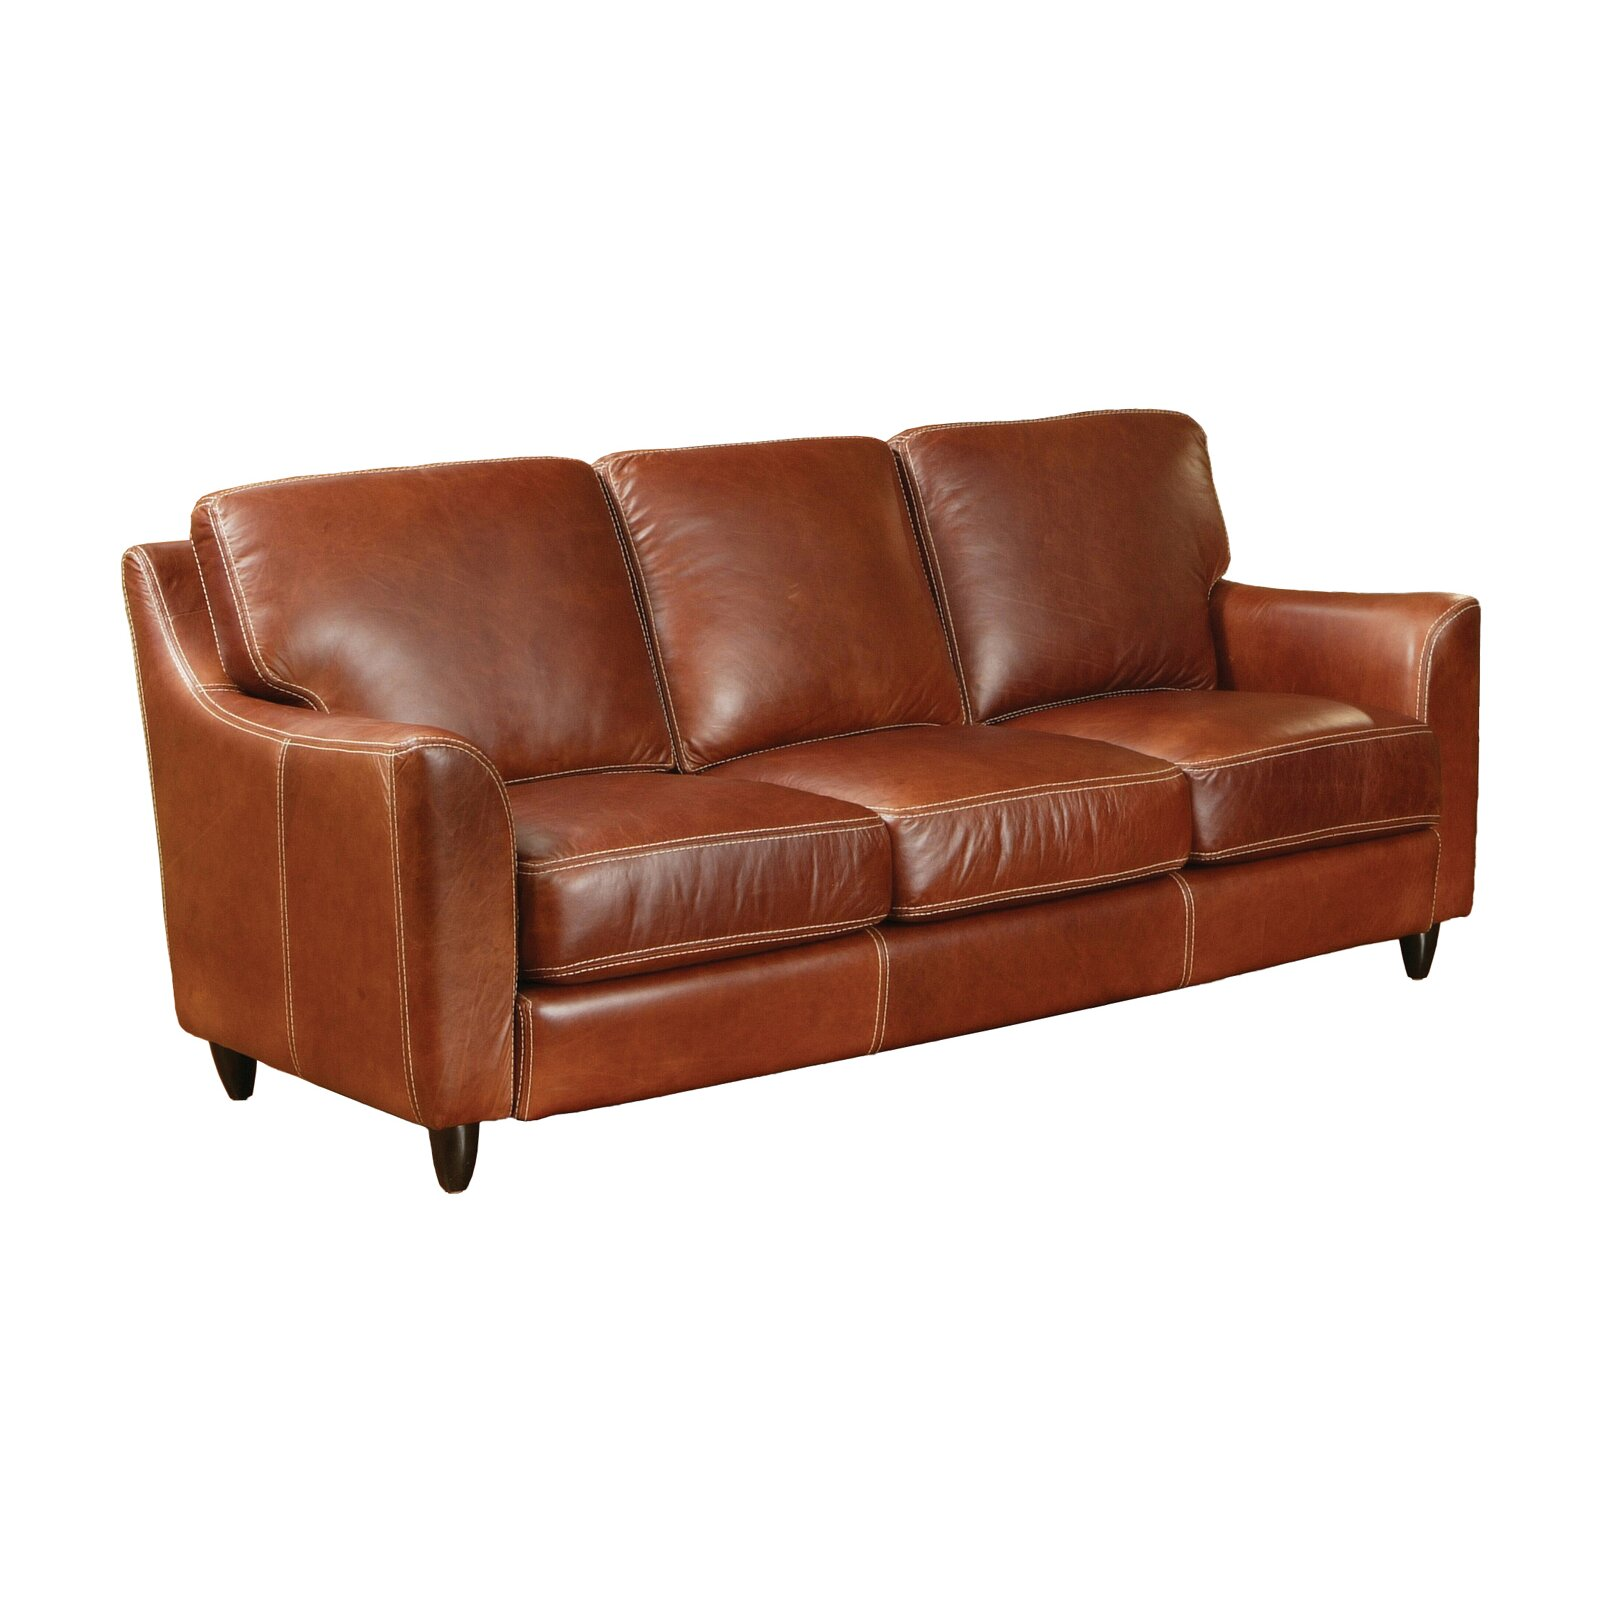 Nevada Leather Sofa Leather Sofa Nevada Furniture Thesofa